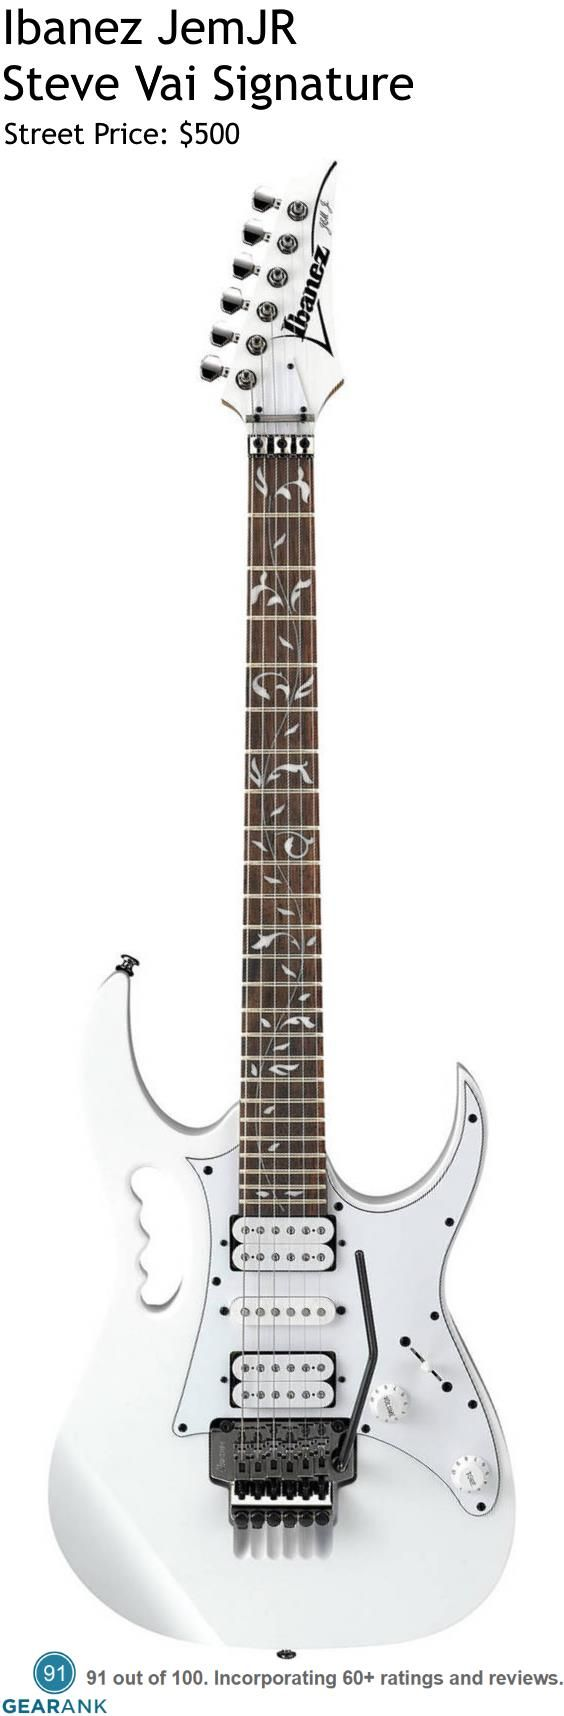 """Ibanez JemJR Steve Vai Signature. The JemJR follows after the design of the original white Jem, with the same double cutaway mahogany body, monkey grip, lion's claw trem cavity, maple neck, and rosewood fingerboard with """"tree of life"""" inlay - only this one uses more cost effective materials and production.  For a detailed guide to Electric Guitars Under $500 see https://www.gearank.com/guides/solidbody-electric-guitars-under-500"""